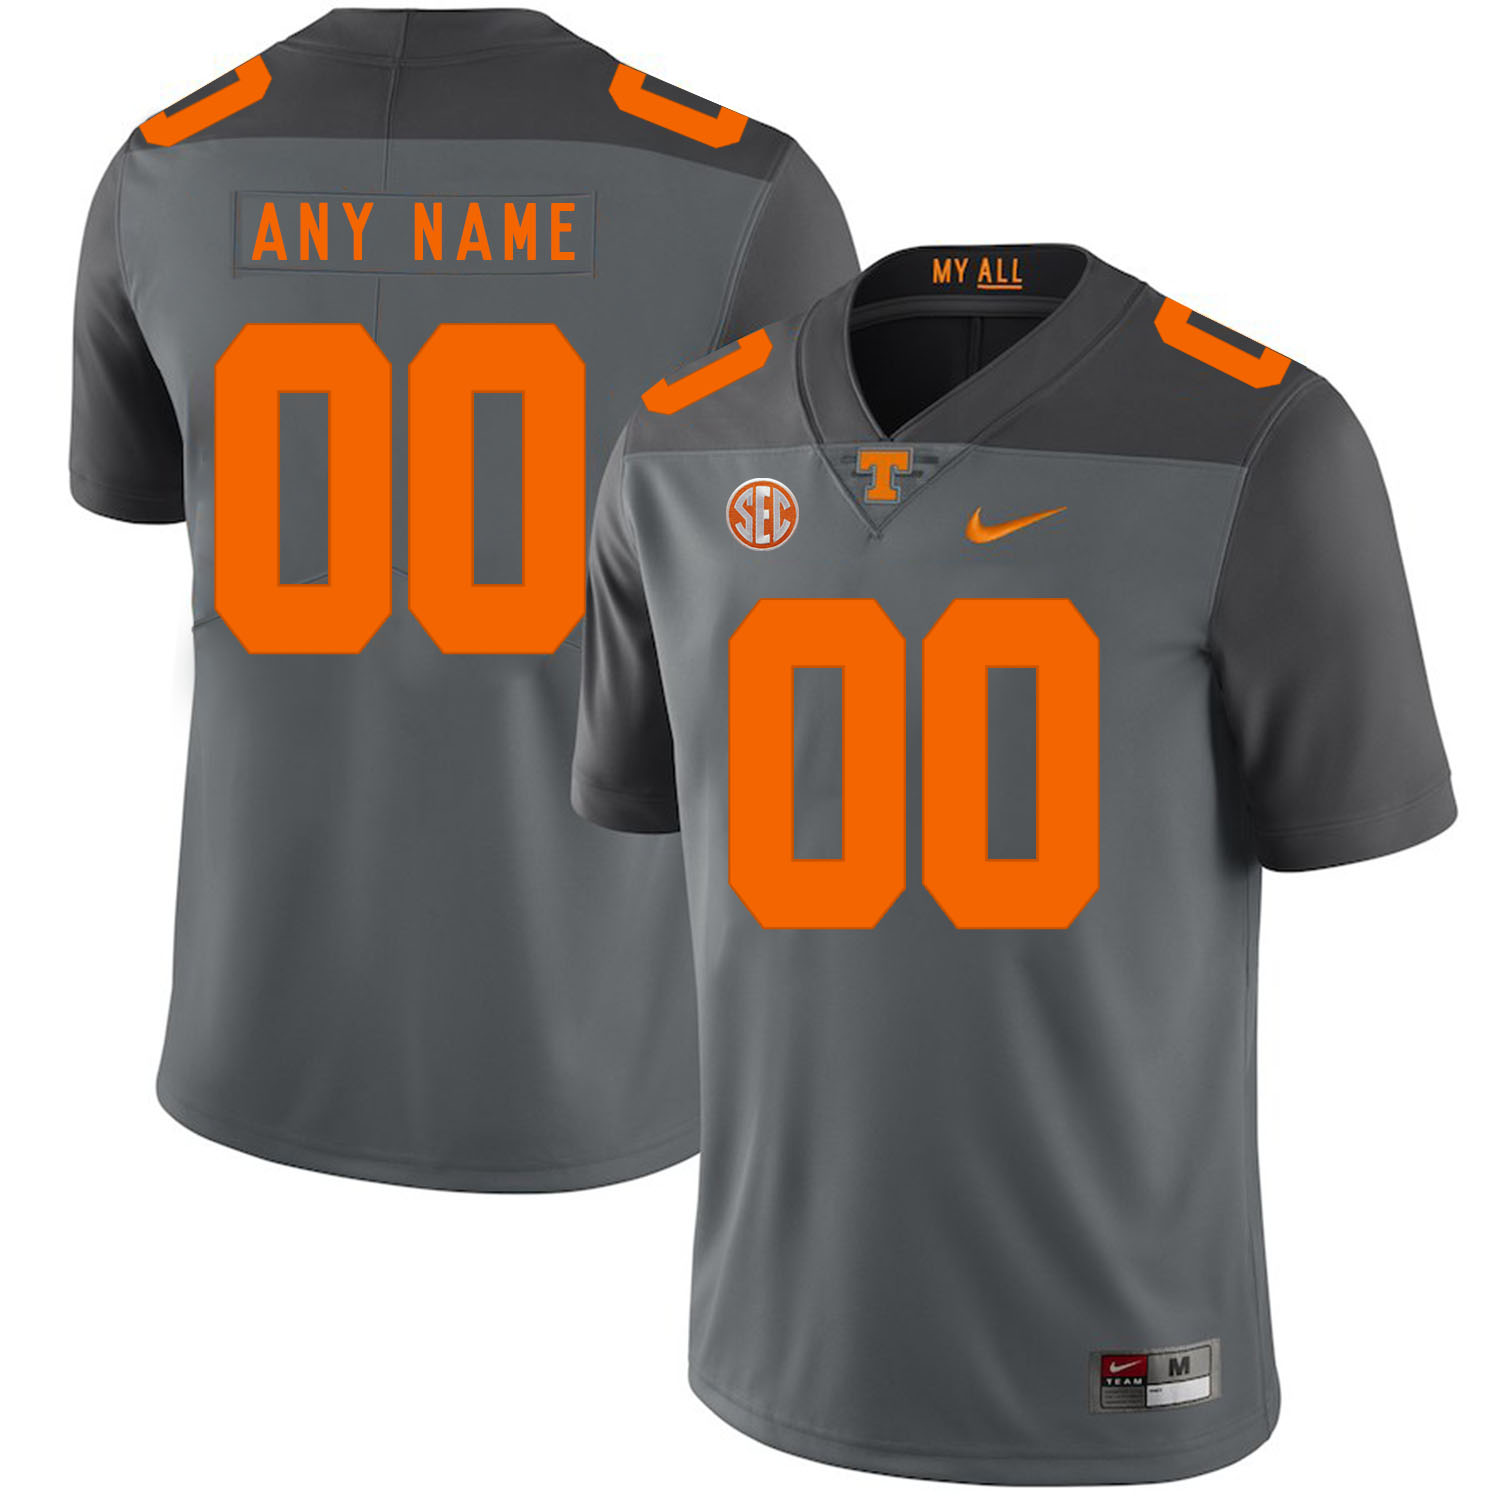 Tennessee Volunteers Gray Men's Customized Nike College Football Jersey